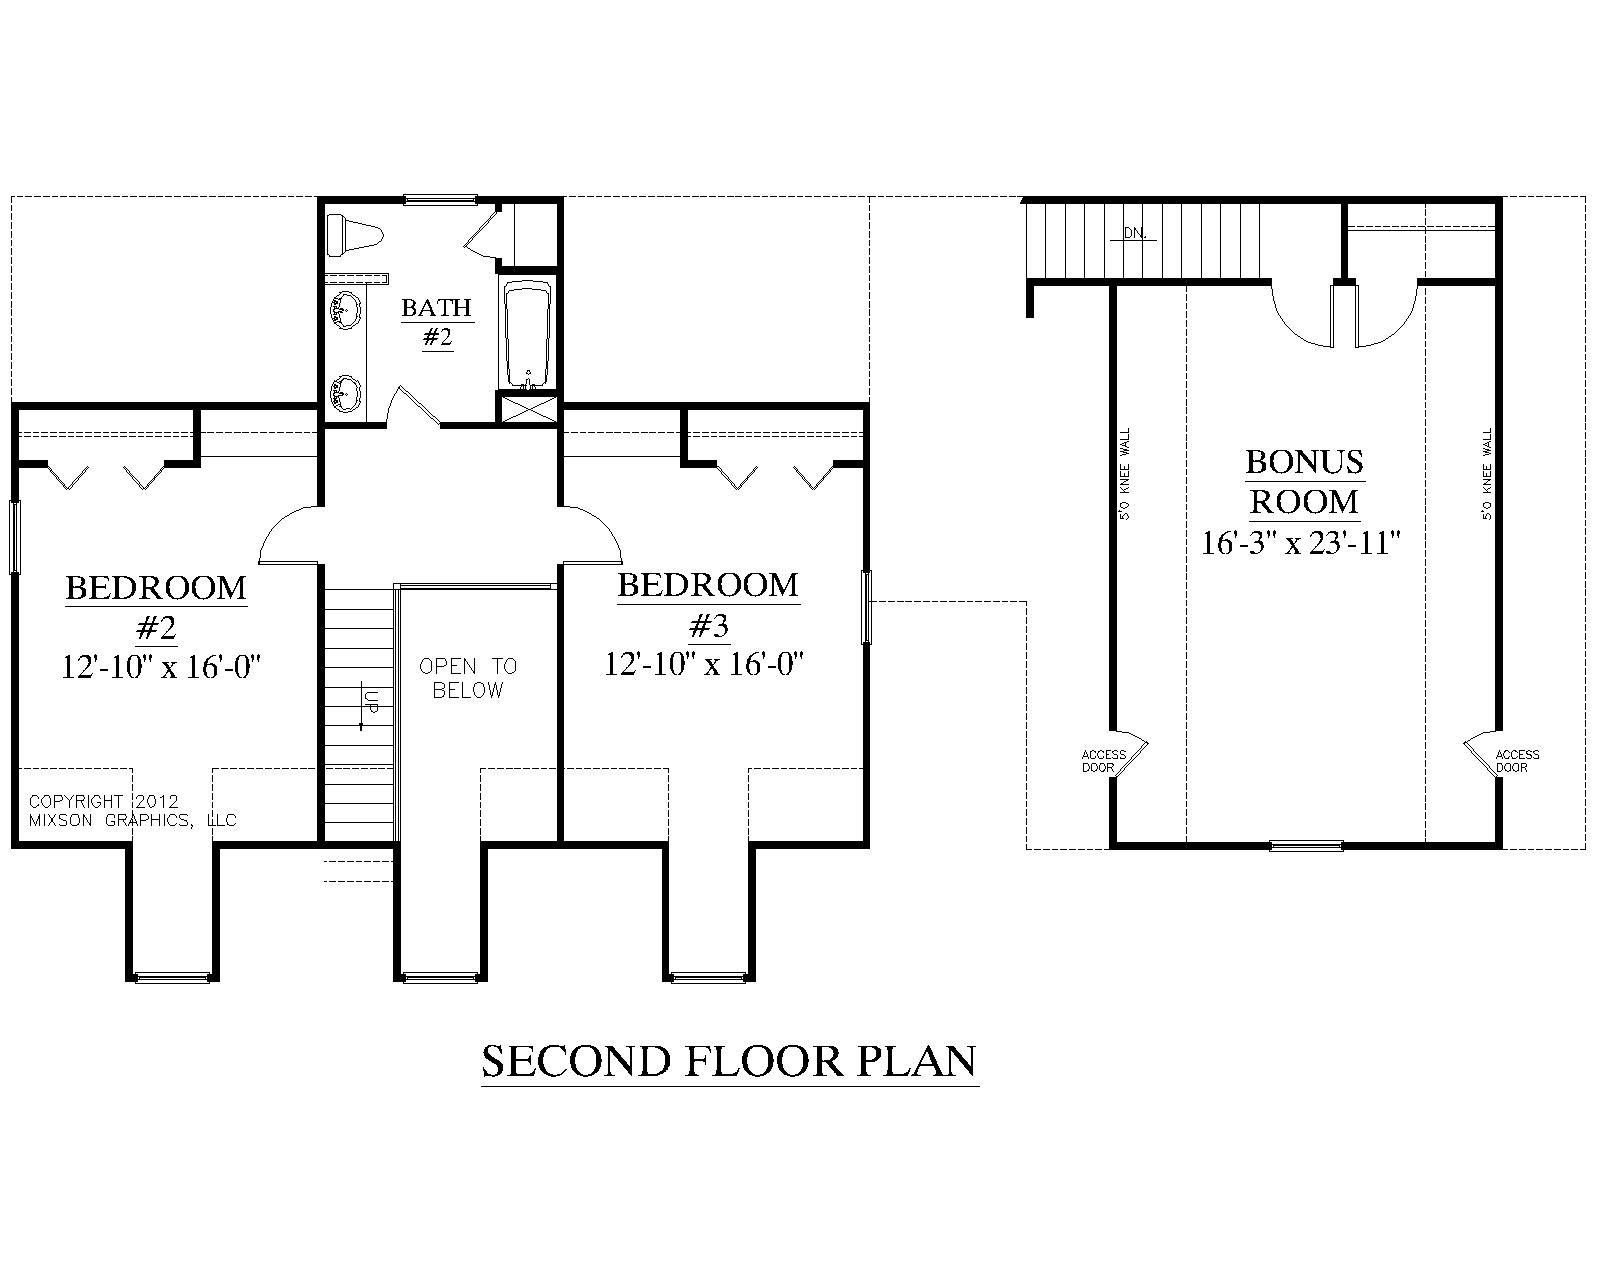 House plan 2091 b mayfield b second floor plan for 2nd floor house front design